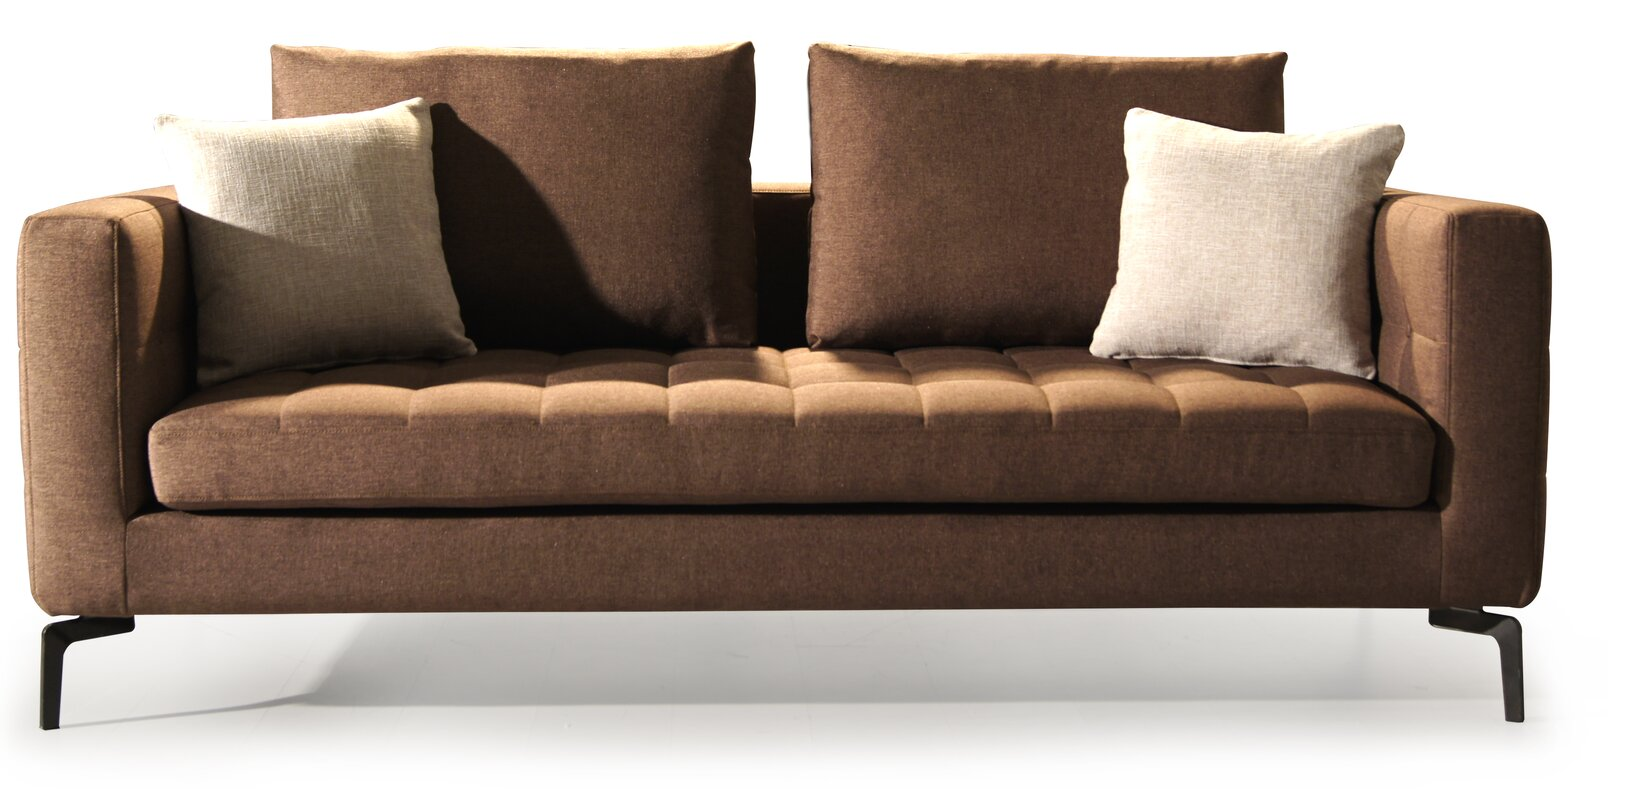 Square Chesterfield Sofa